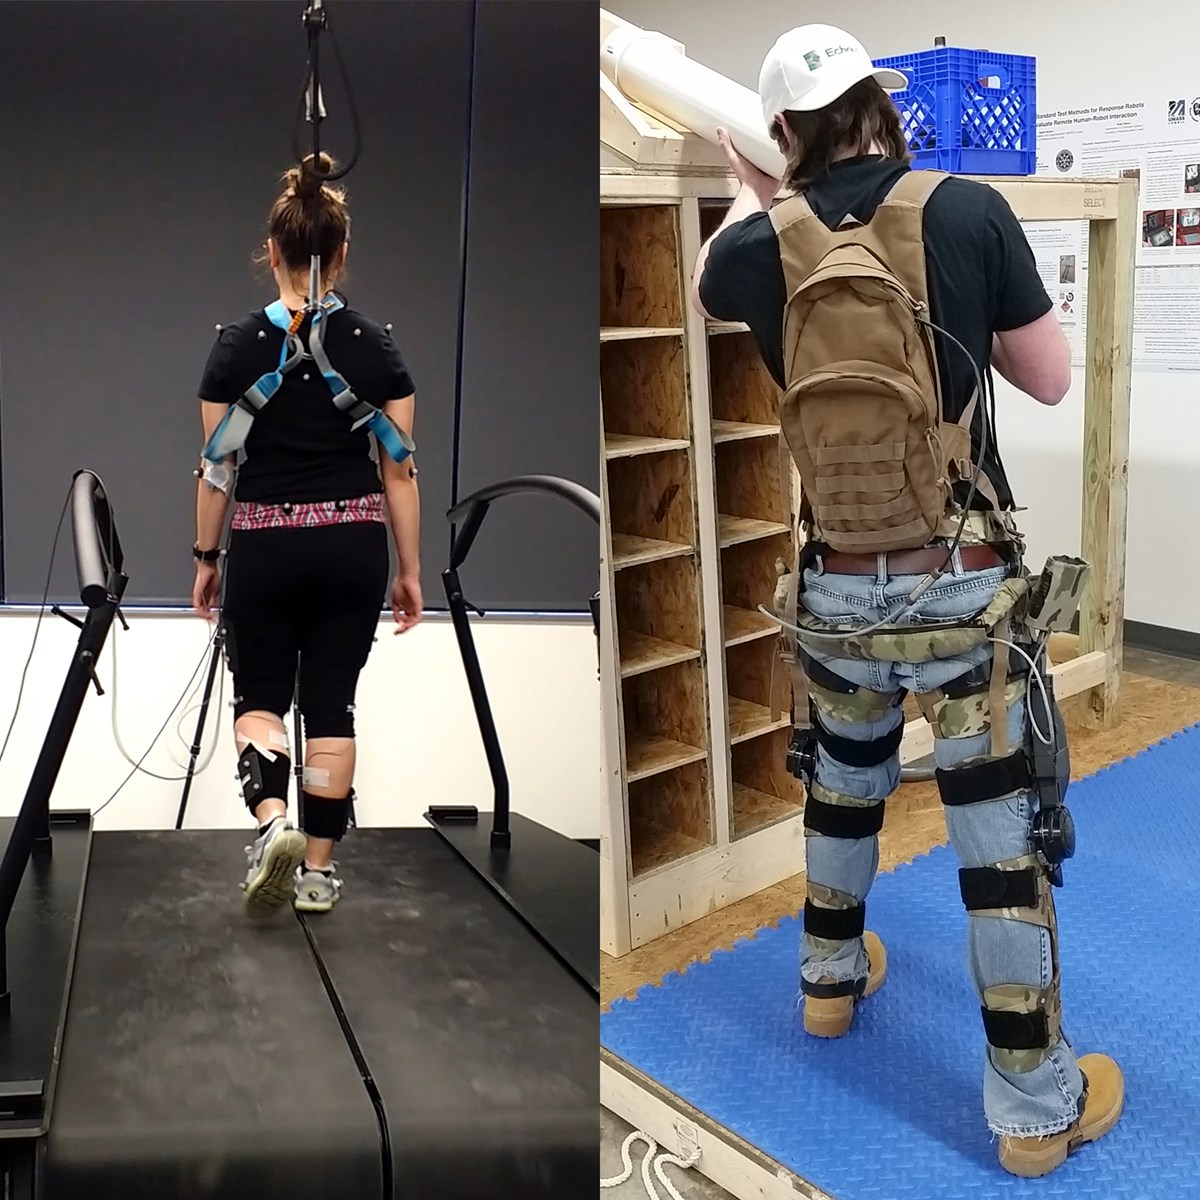 Person on treadmill with motion capture (left) and person wearing exoskeleton lifting munitions test artifact (right)